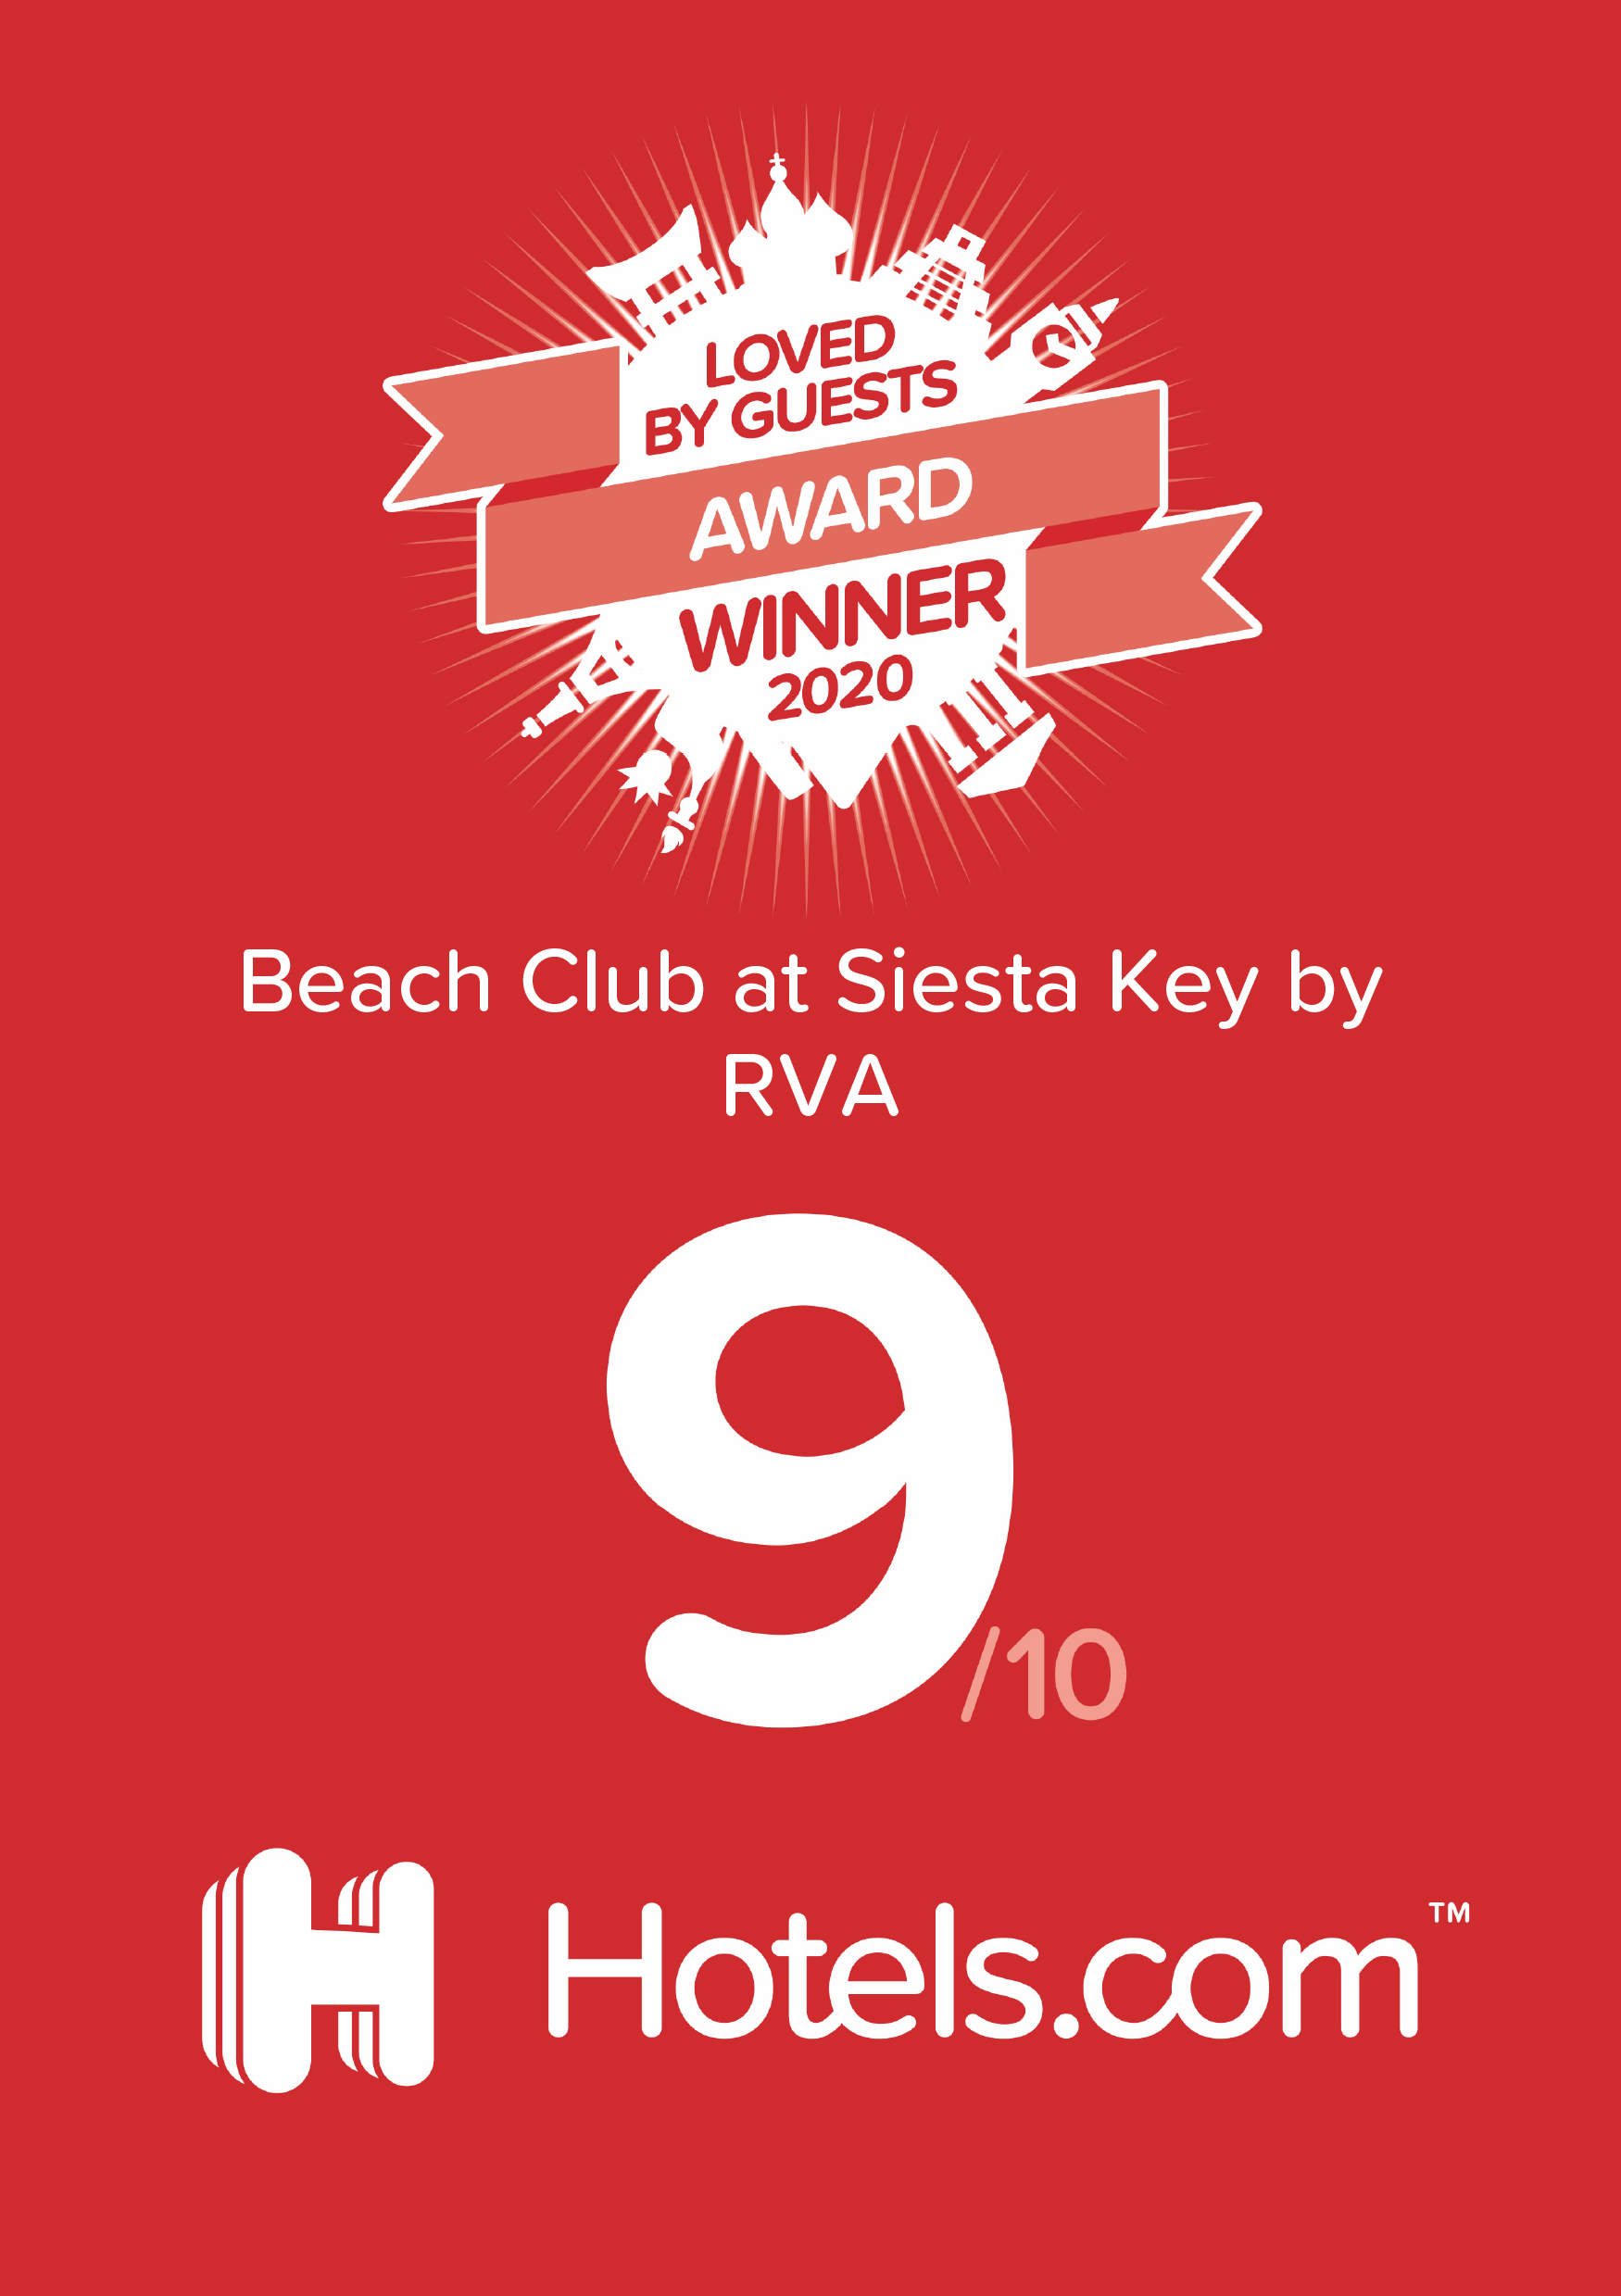 Loved by Guests to Beach Club at Siesta Key by RVA